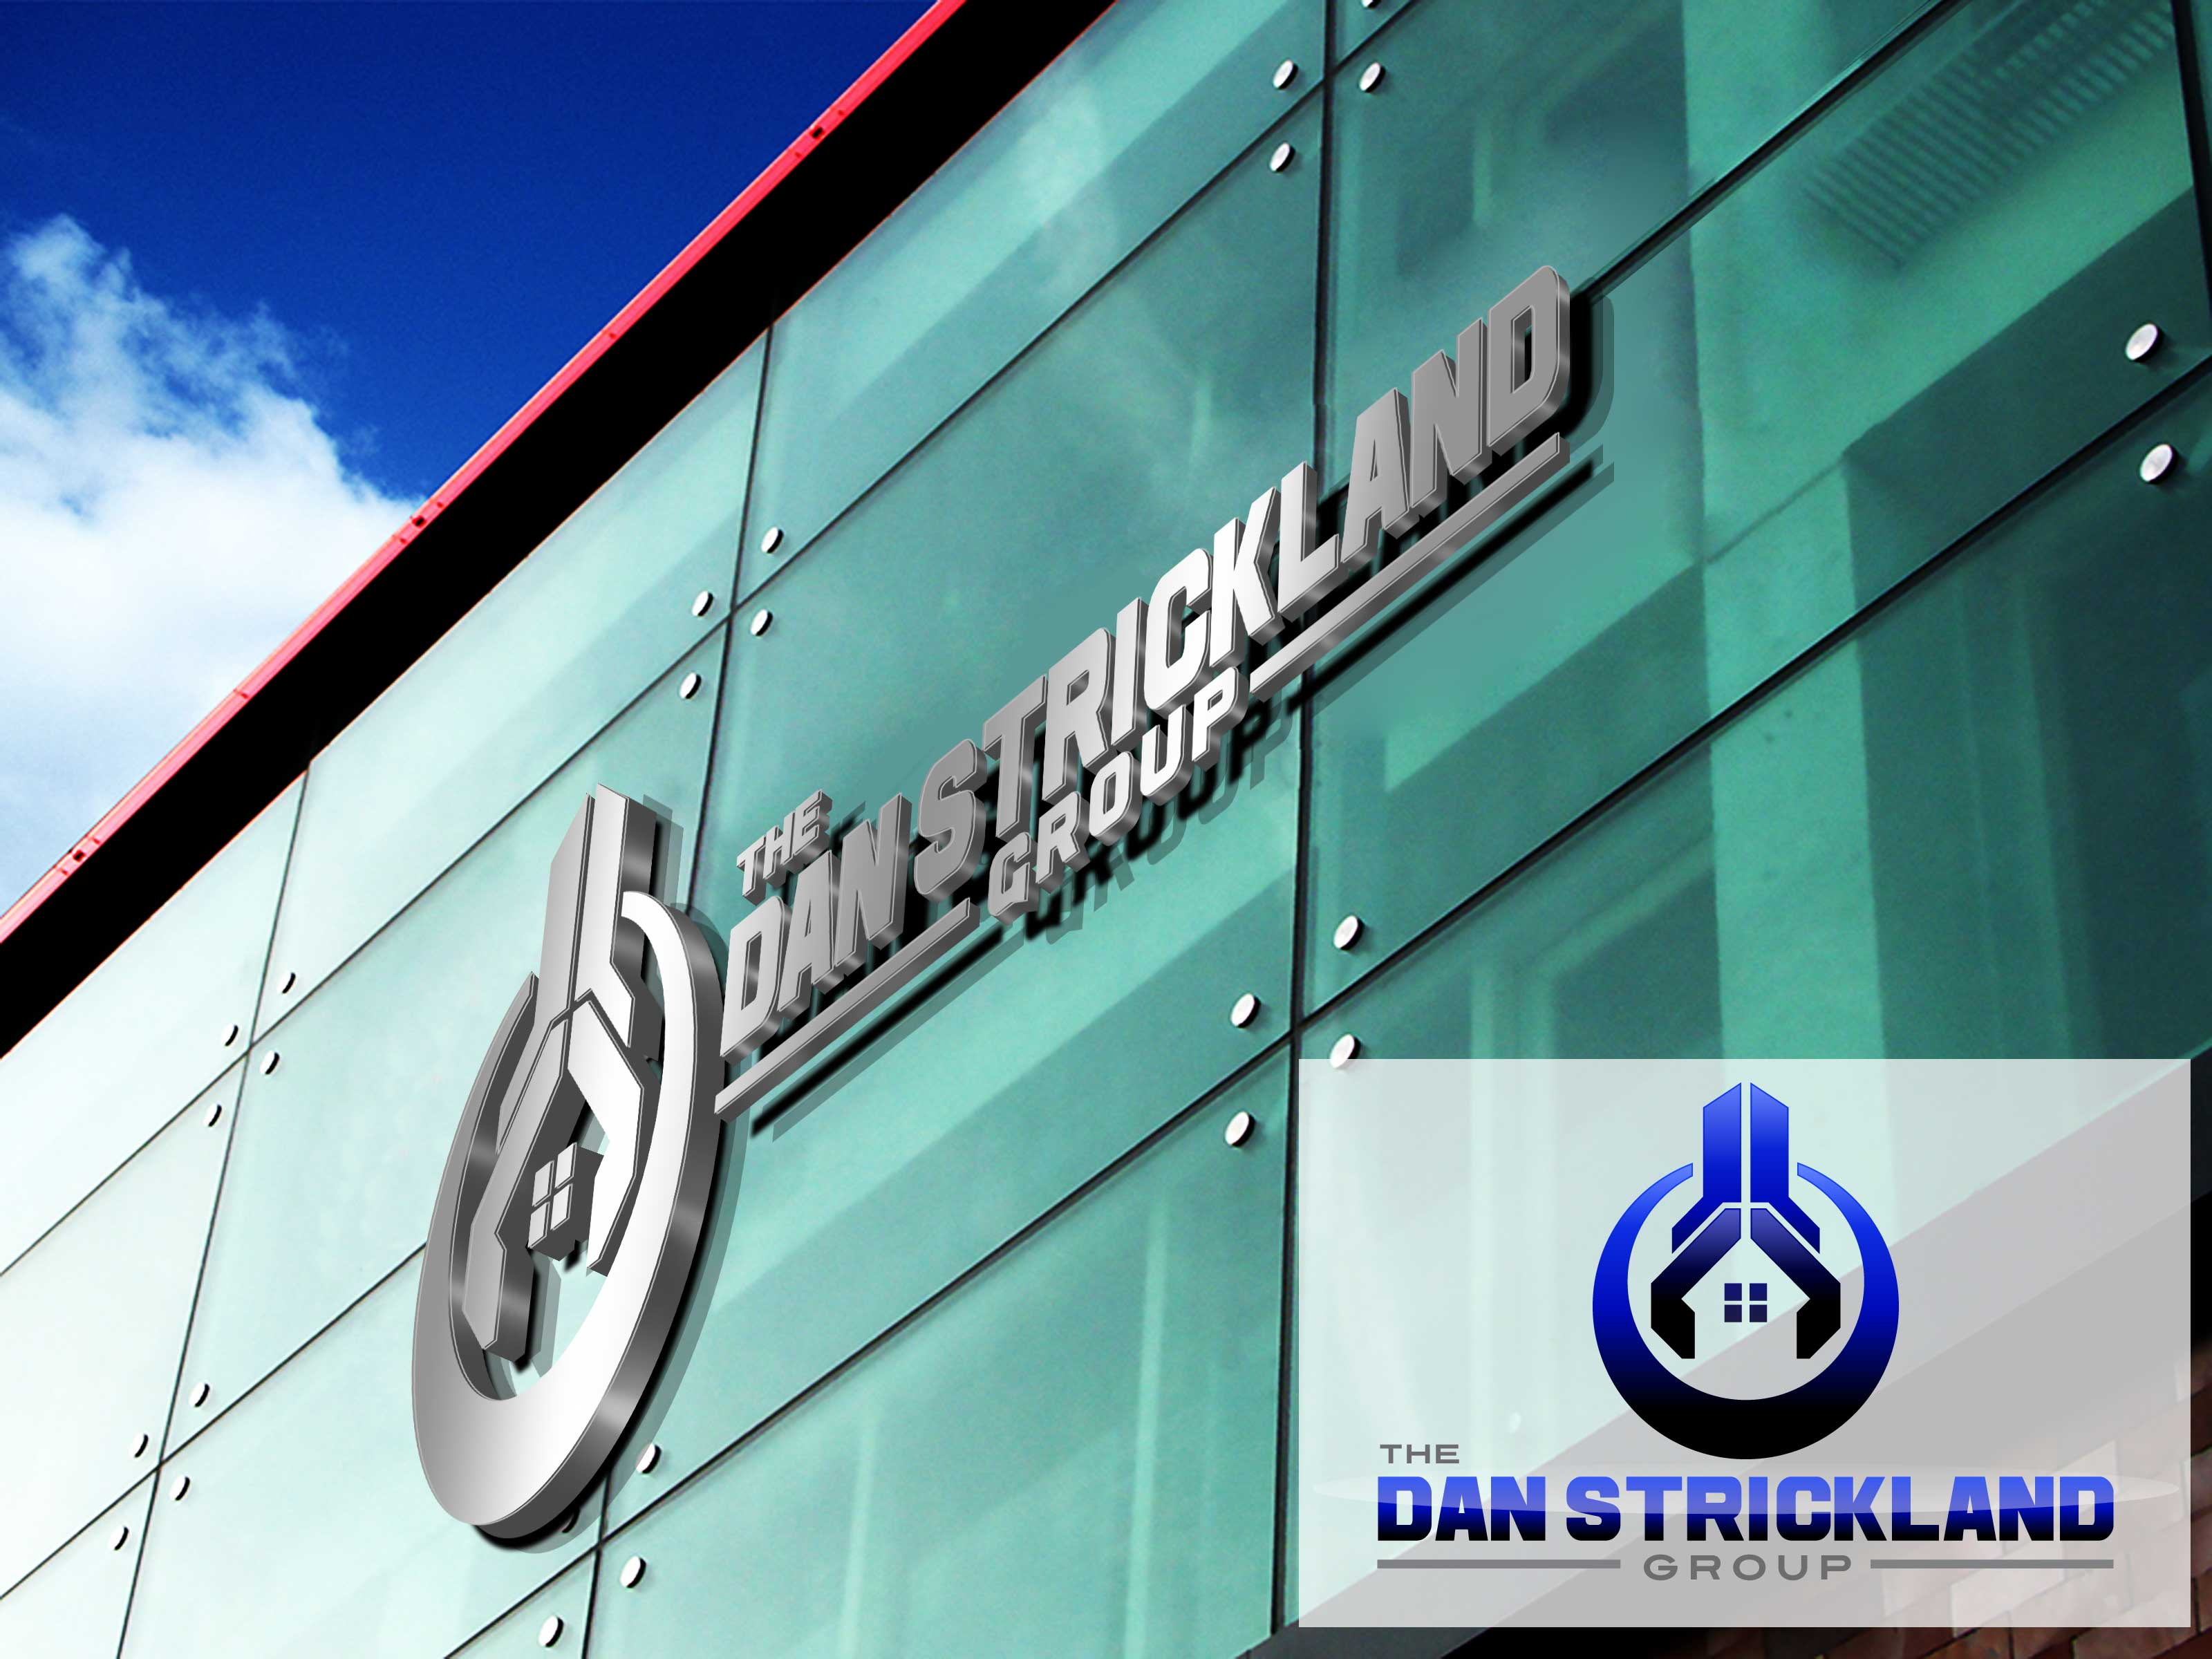 Logo Design by lagalag - Entry No. 281 in the Logo Design Contest Creative Logo Design for The Dan Strickland Group.